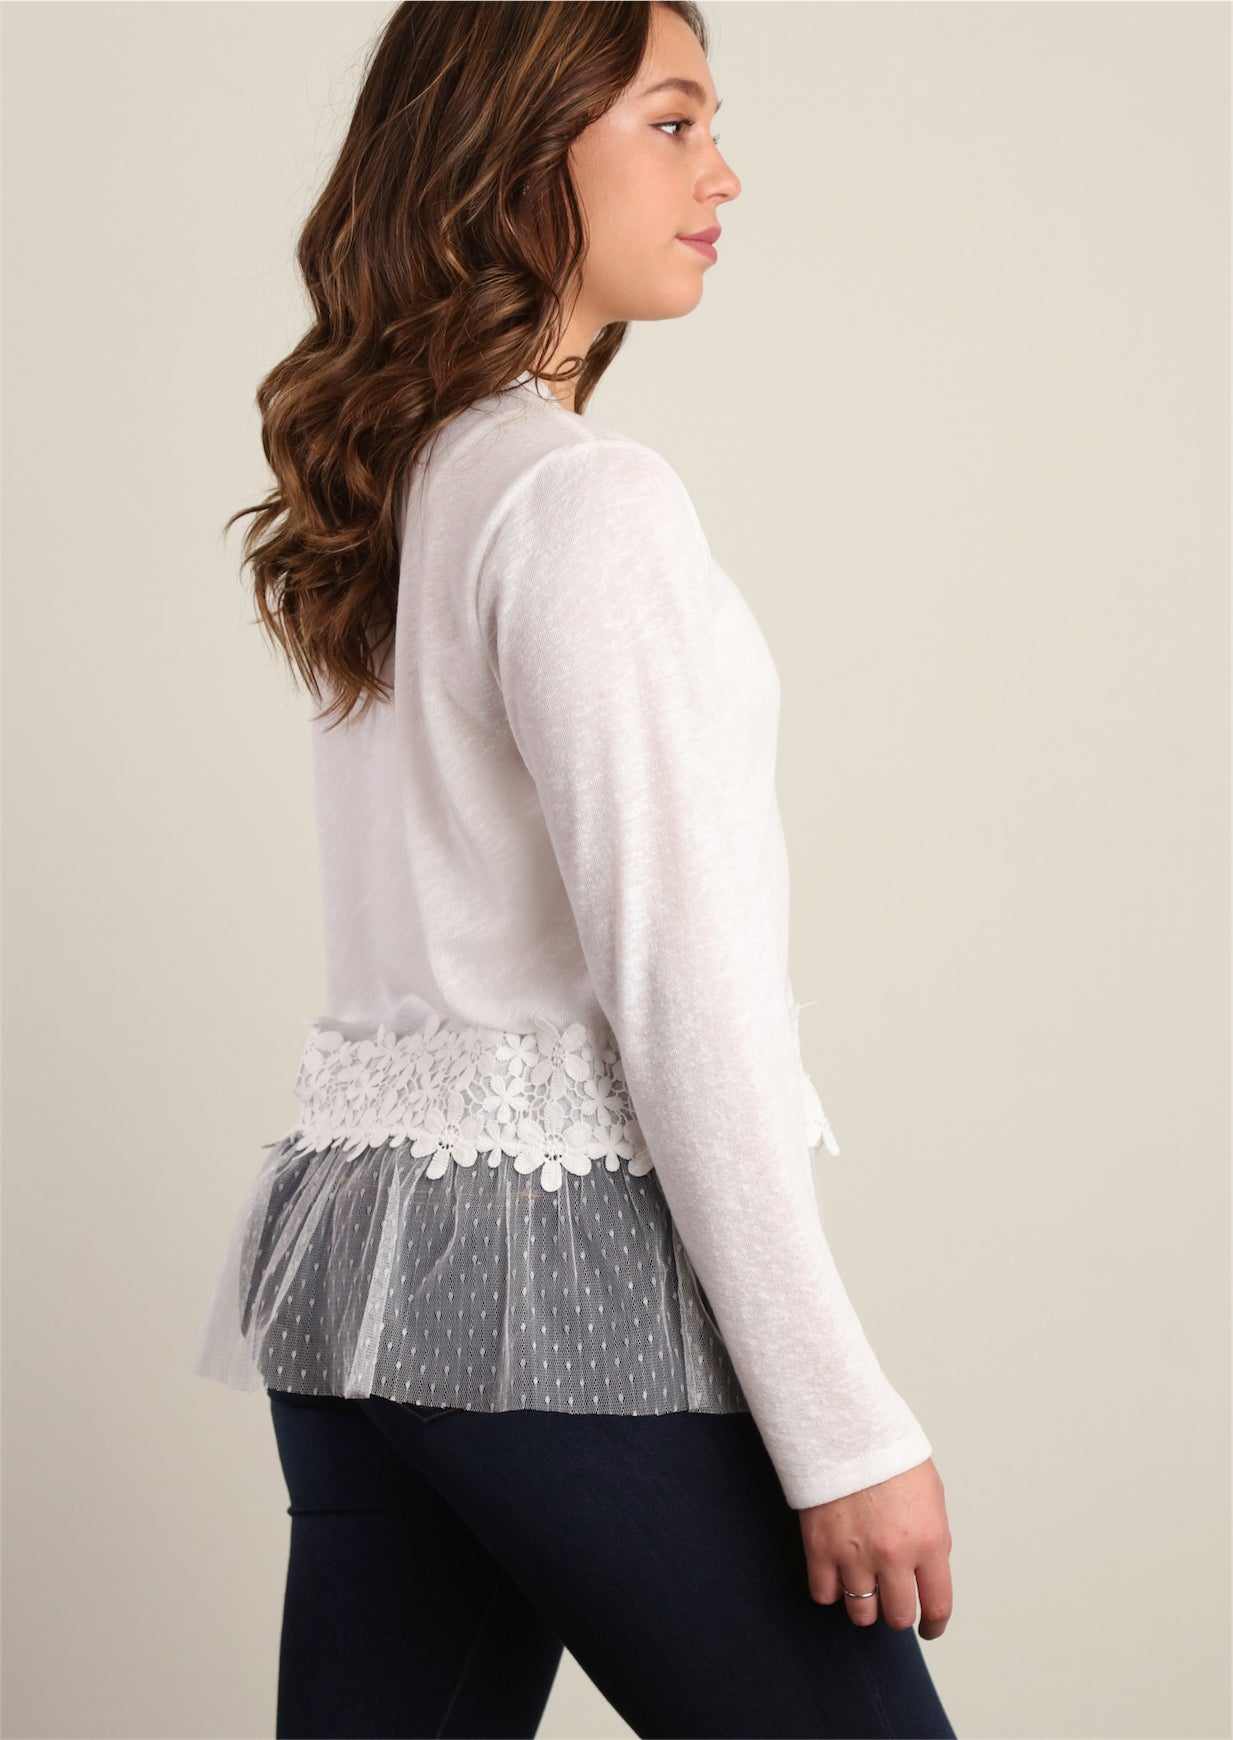 White/Ivory Sweater Knit